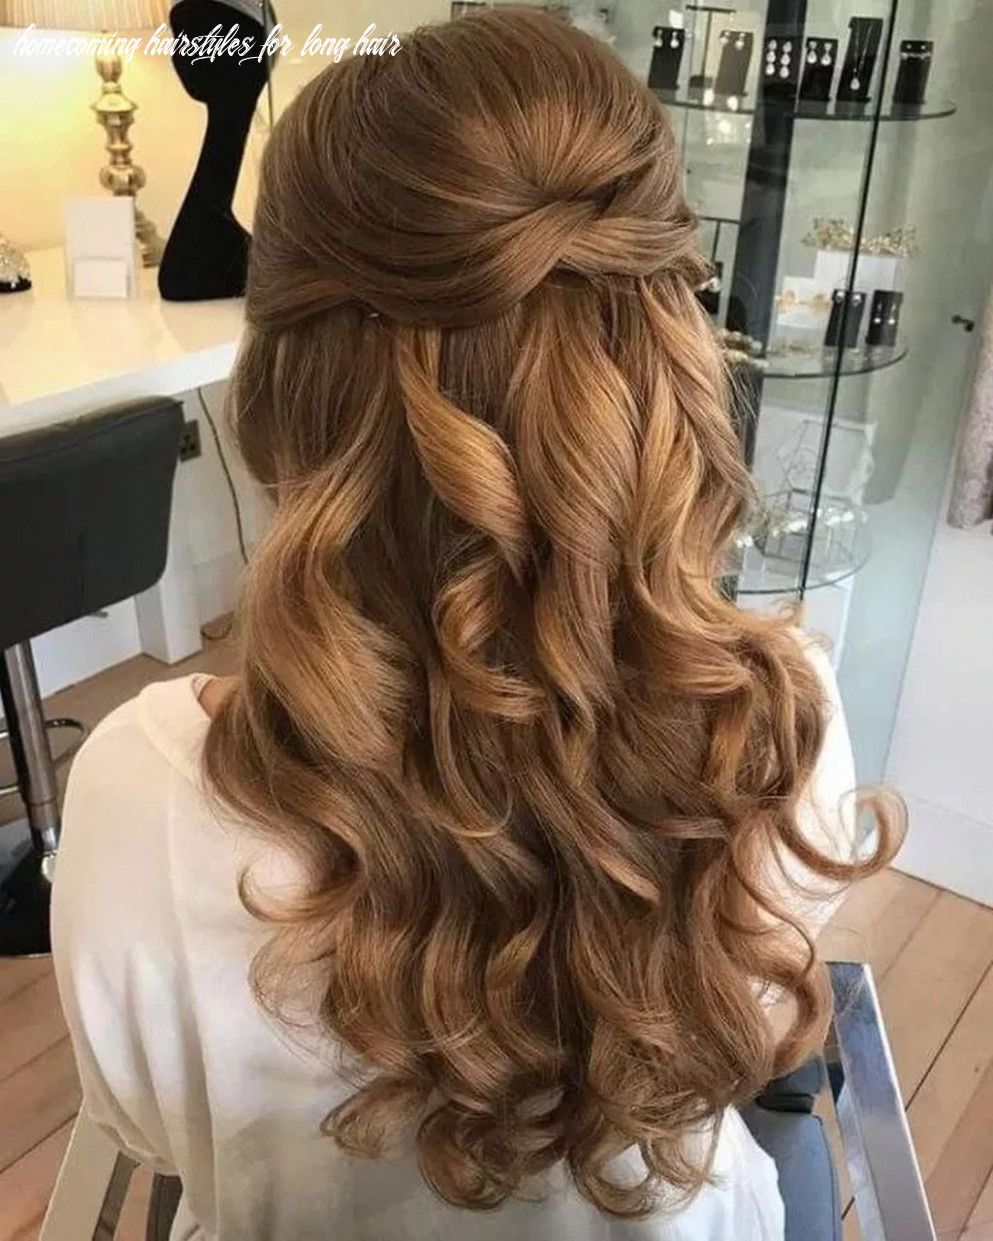 Cool 12 astonishing curly prom hairstyles ideas to try in 12